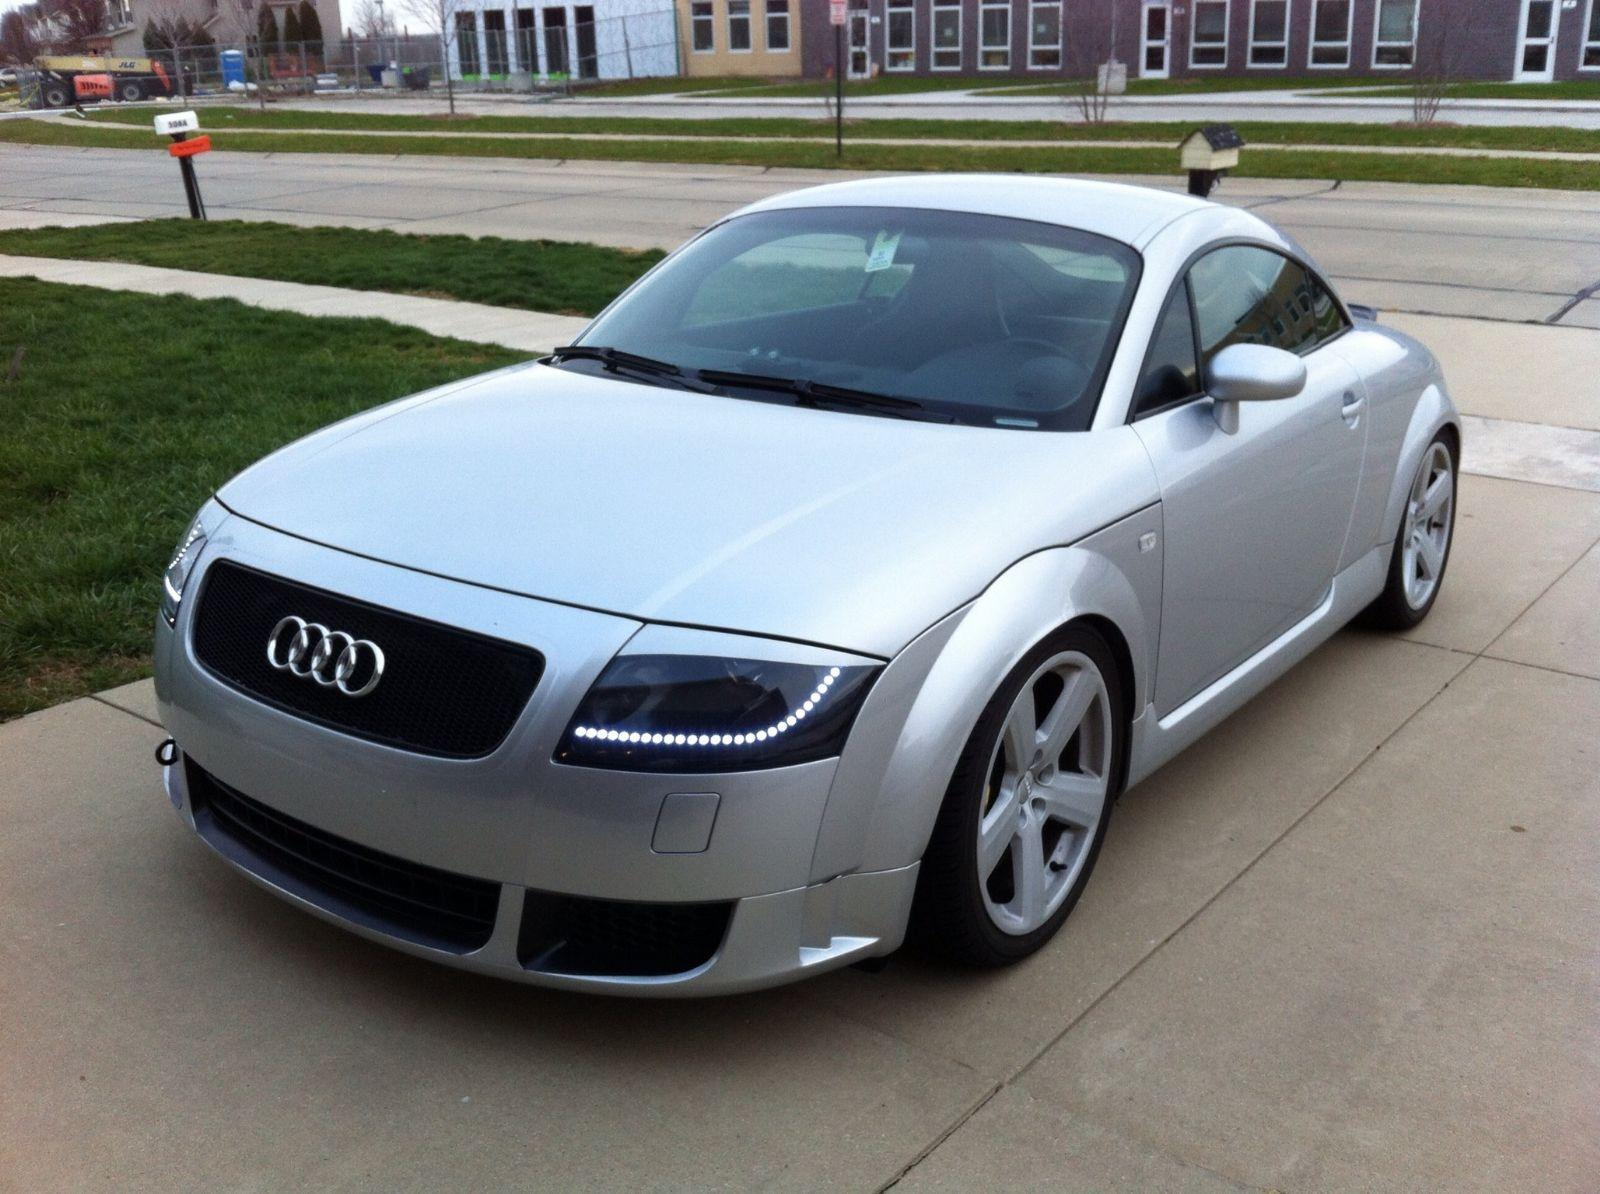 2005 audi tt information and photos zombiedrive. Black Bedroom Furniture Sets. Home Design Ideas